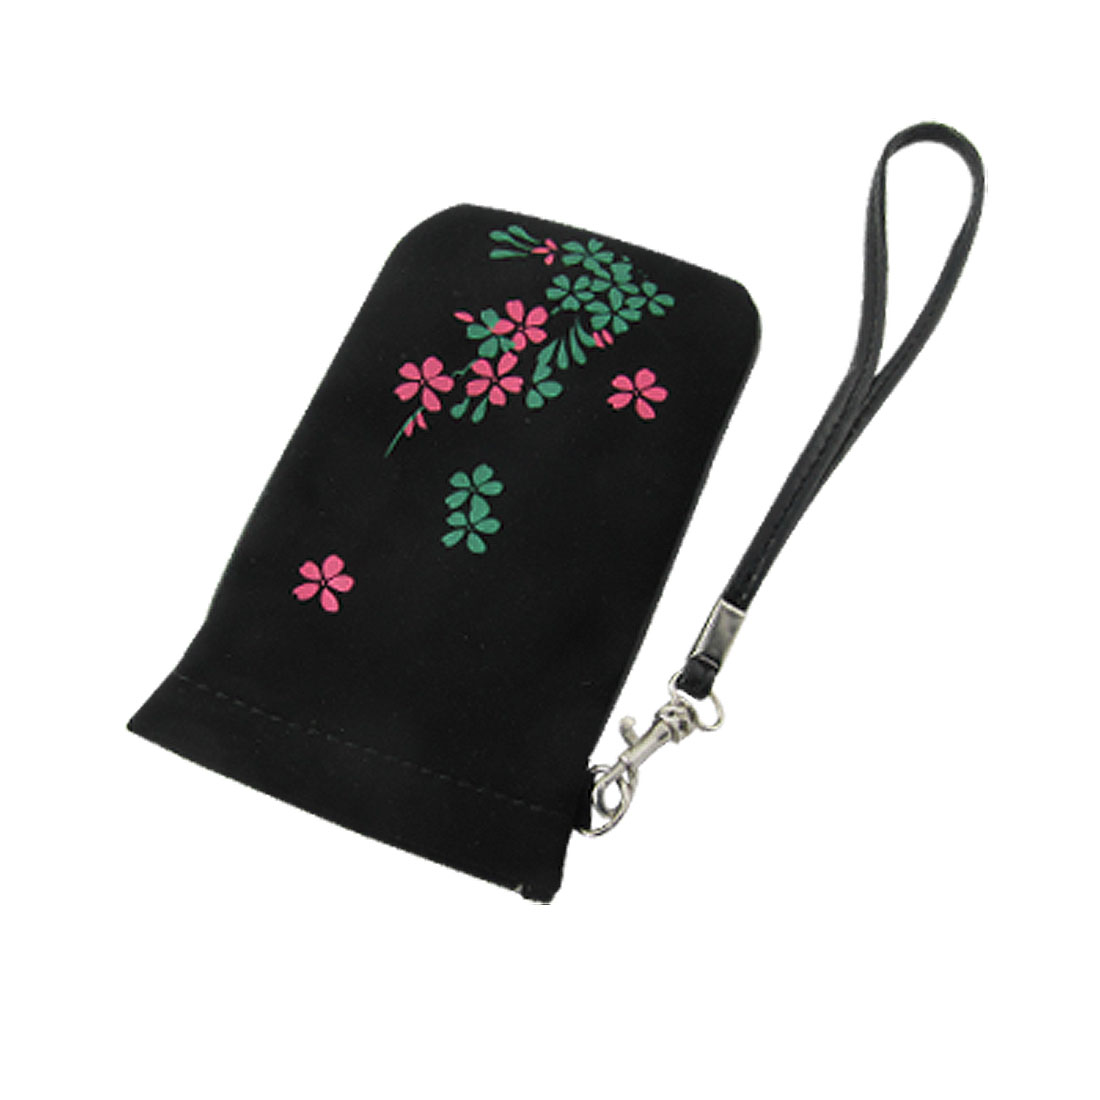 Black PVC Faux Leather Fuchsia Flower Pouch Bag for Mobile Phone